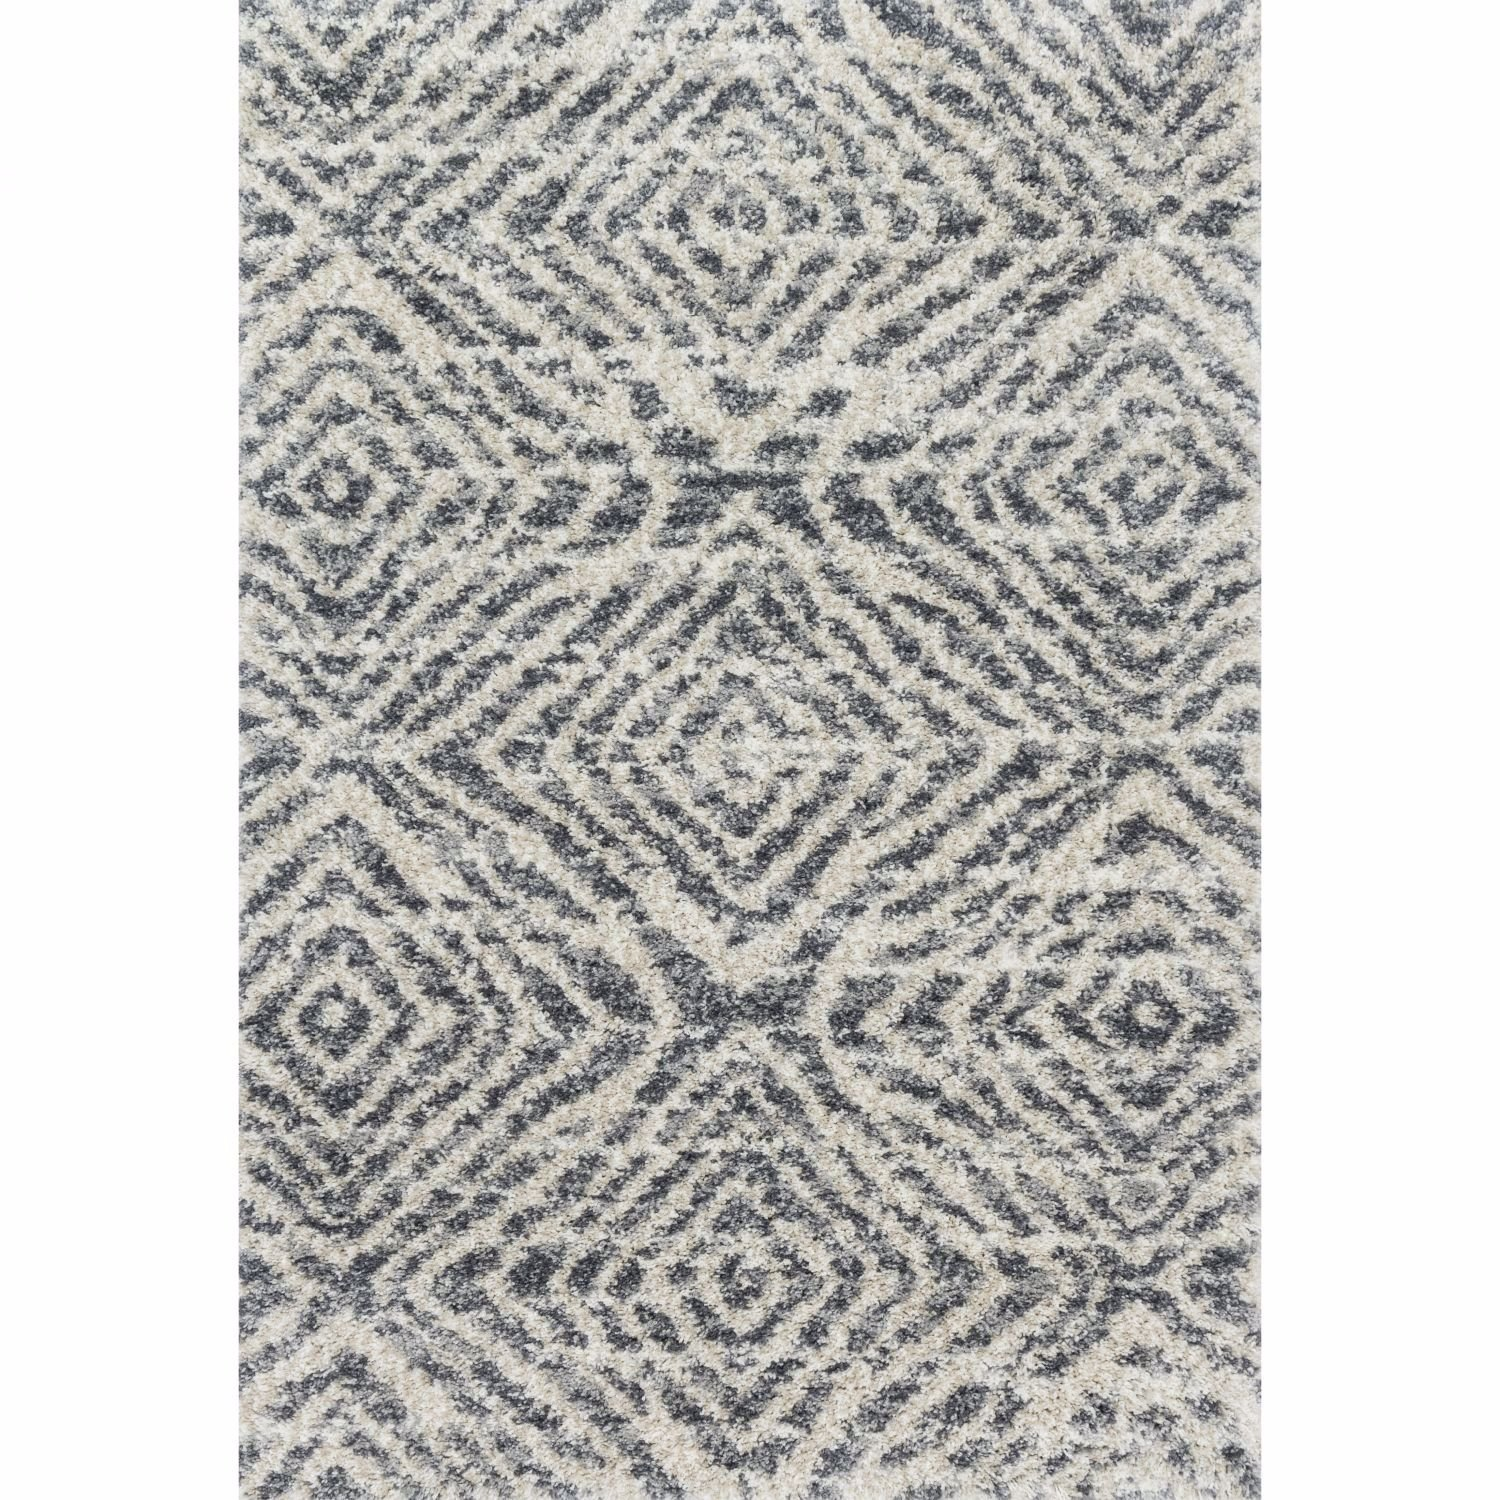 Picture of Quincy Graphite Sand Diamond 8x10 Rug